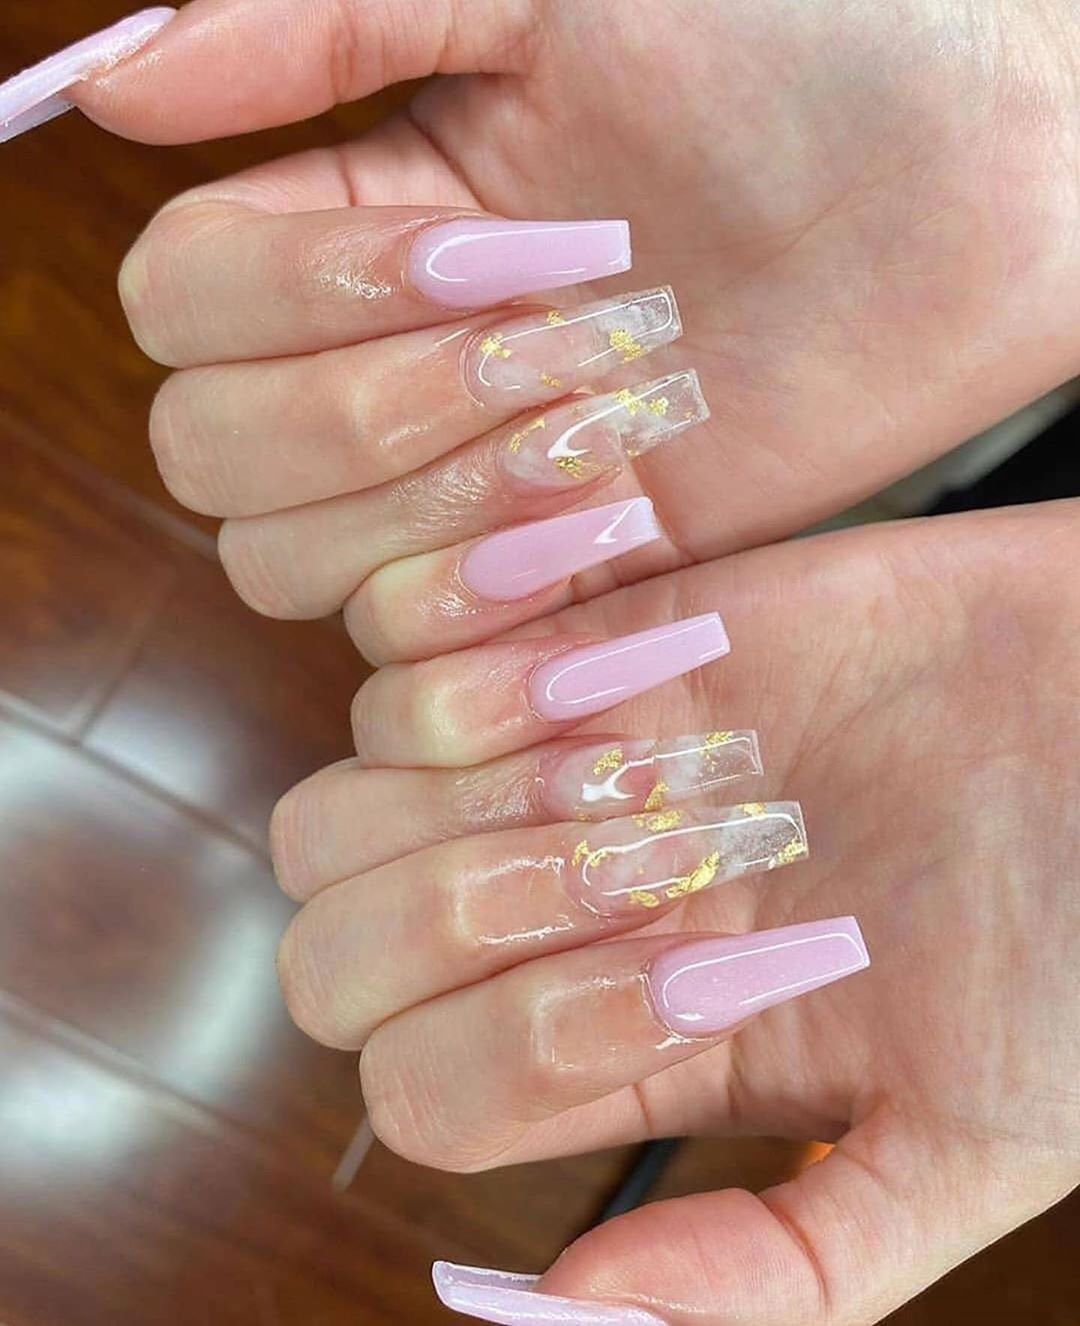 Nails Living On Instagram Choose Your Favourite Follow Nailsliving Follow Nailsl In 2020 Pink Acrylic Nails Cute Acrylic Nail Designs Summer Acrylic Nails